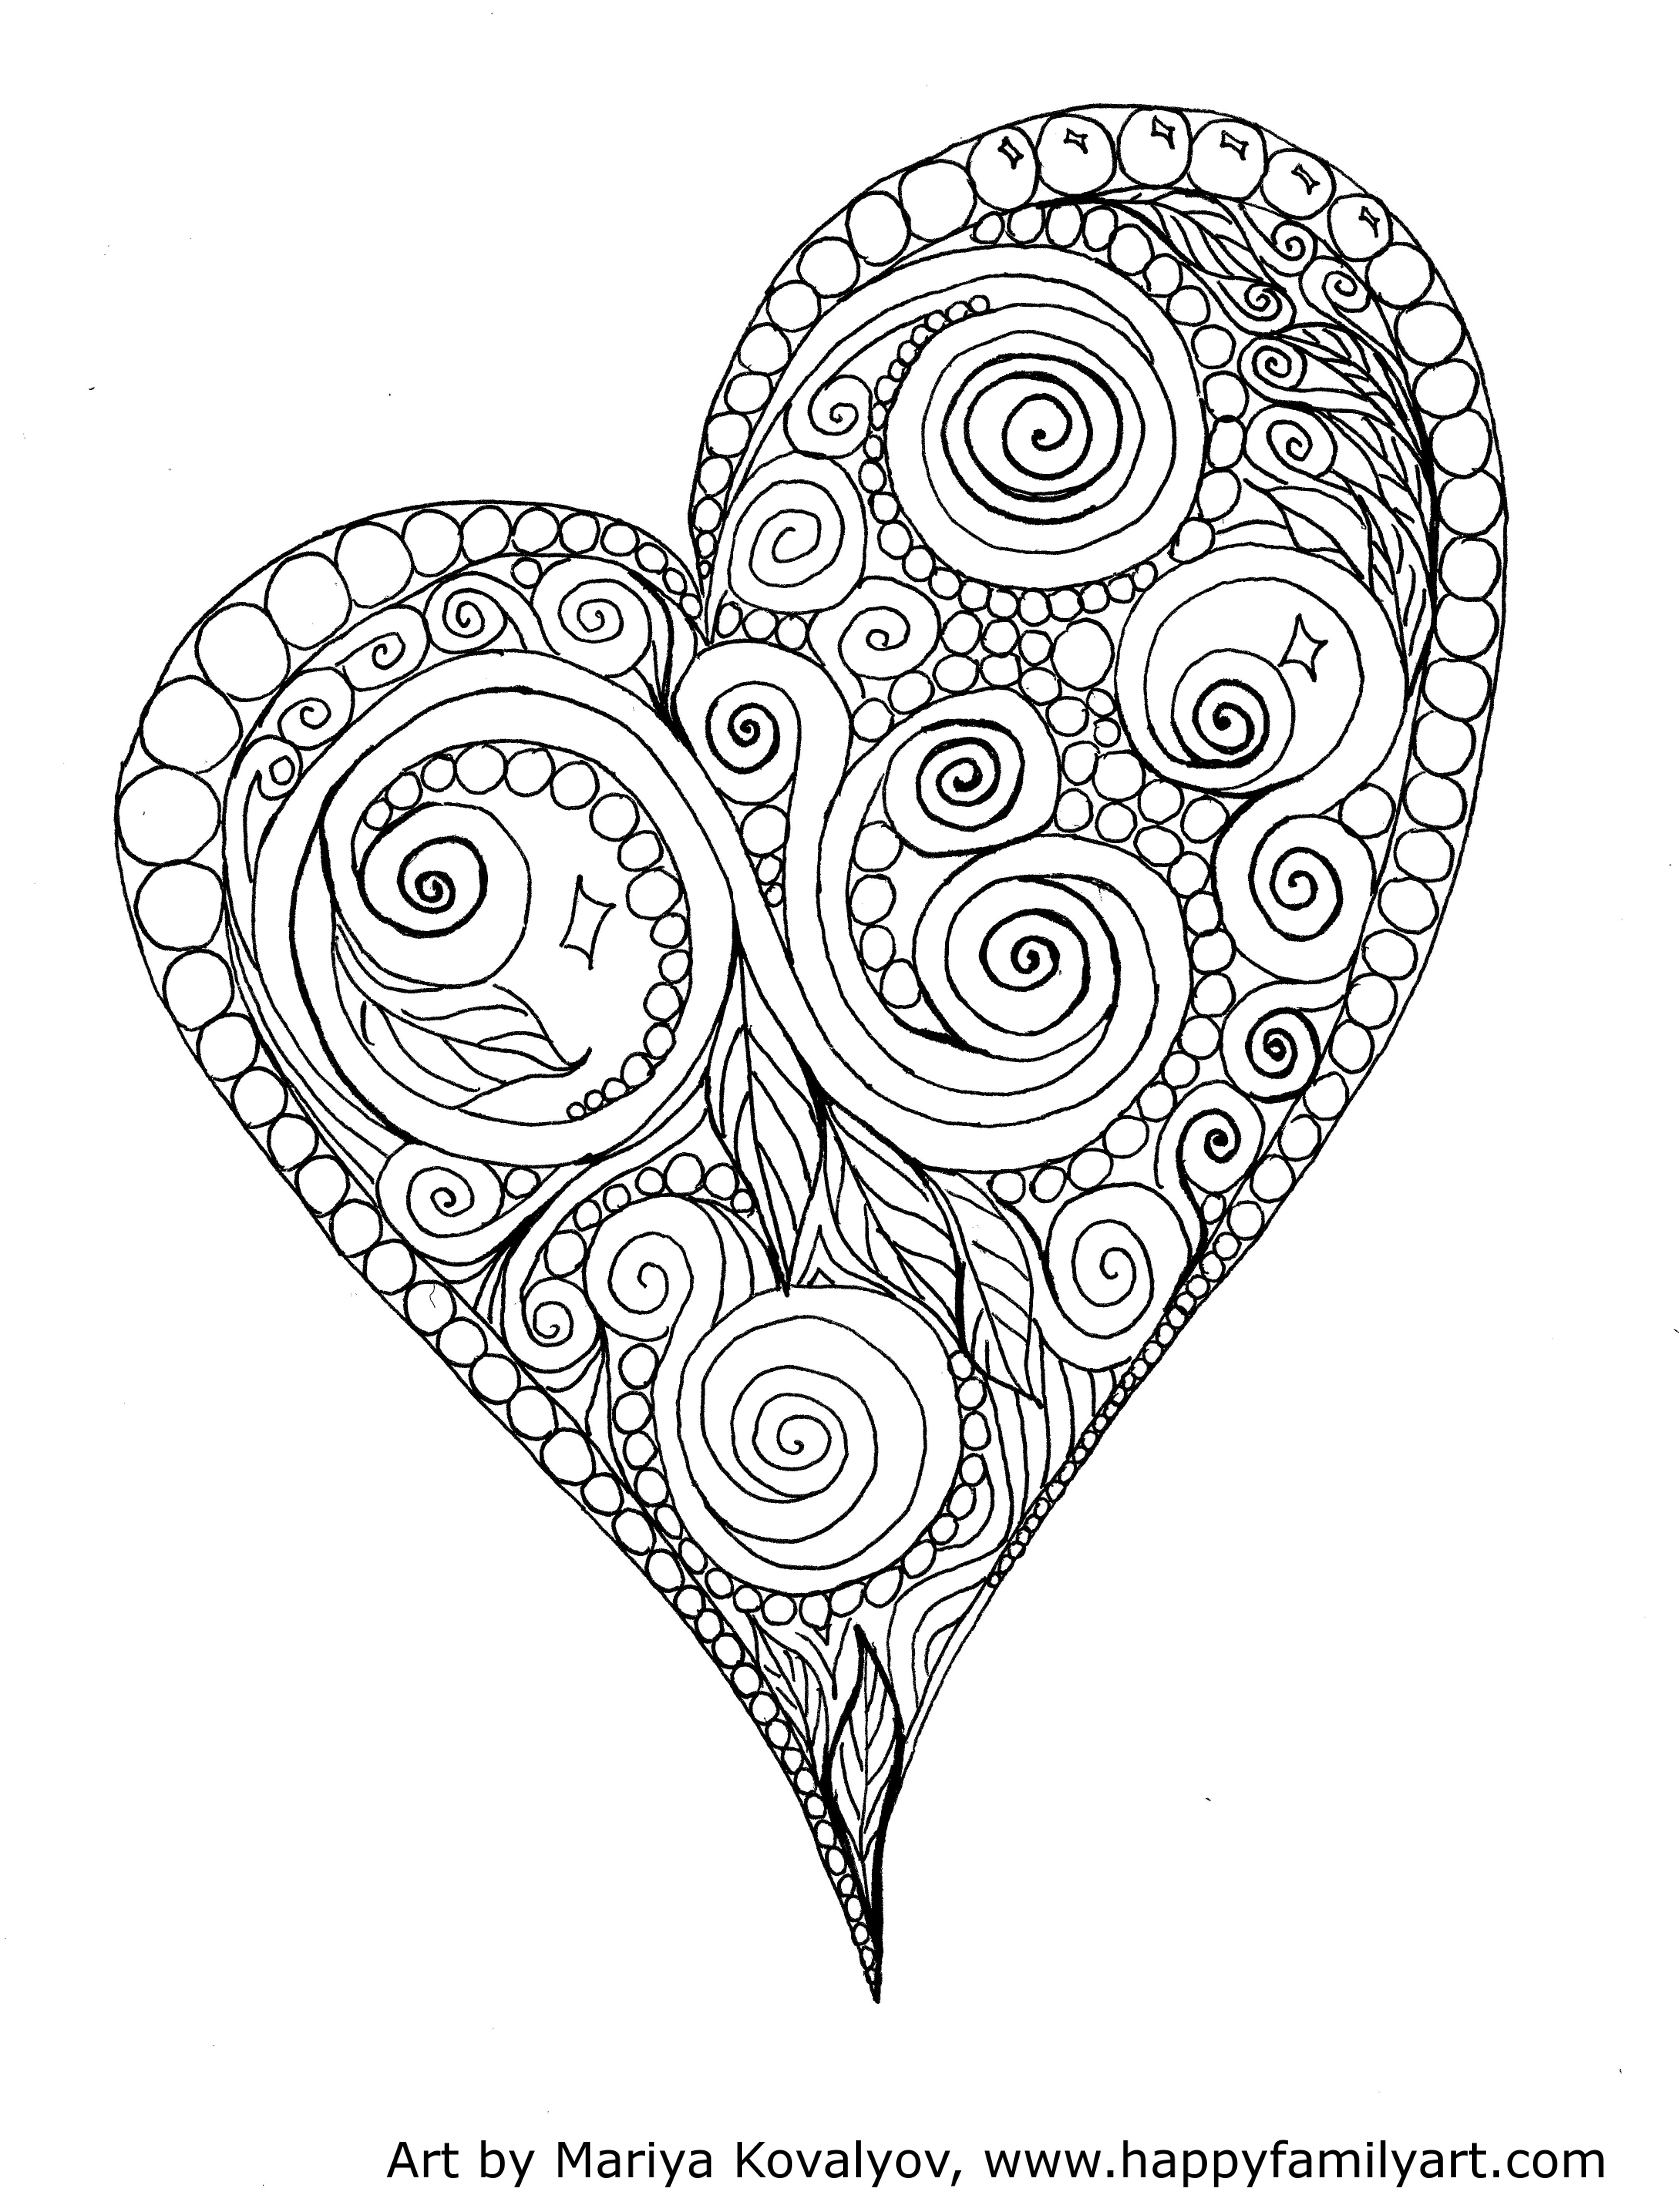 Advanced Valentine Coloring Pages : Van gogh starry night famous paintings coloring pages